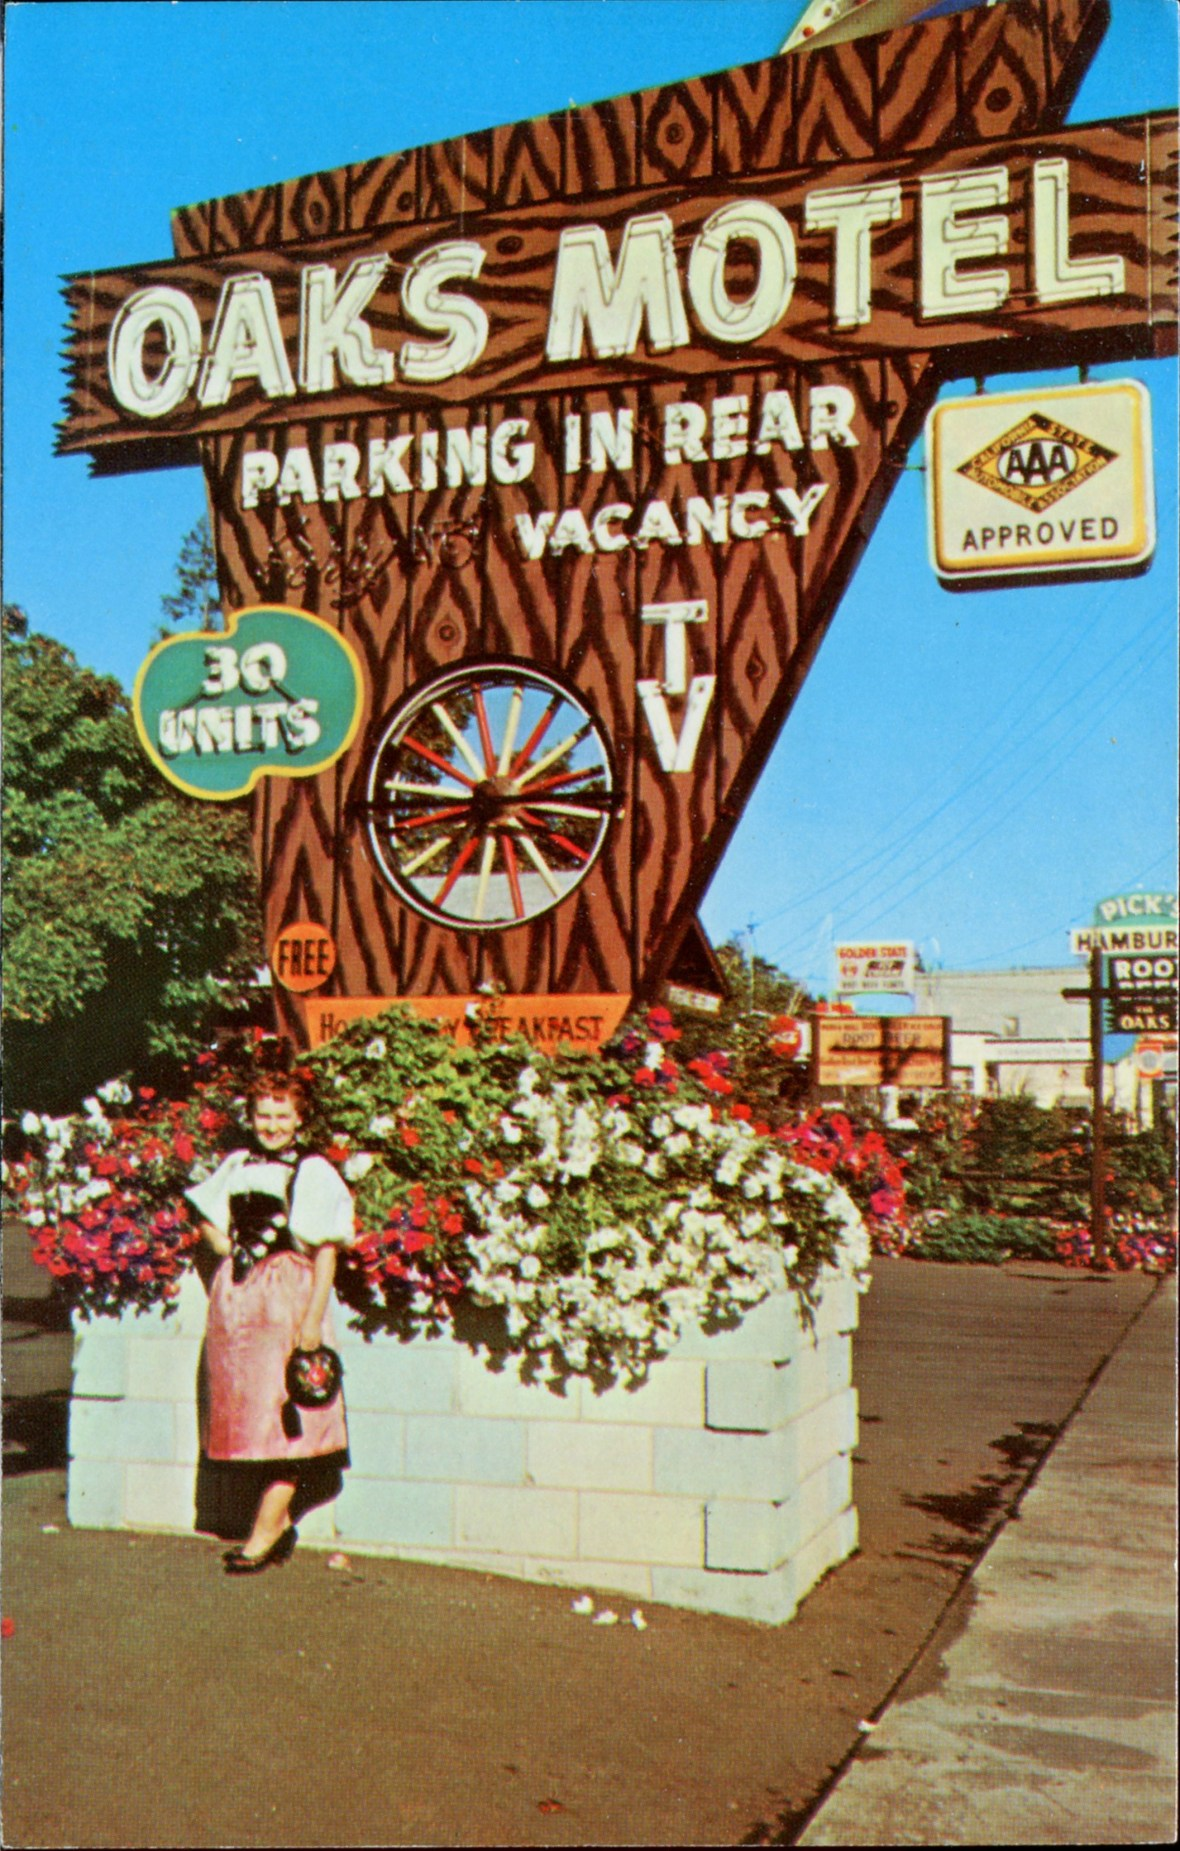 Oaks Motel - 123 South Cloverdale Boulevard, Cloverdale, California U.S.A. - date unknown